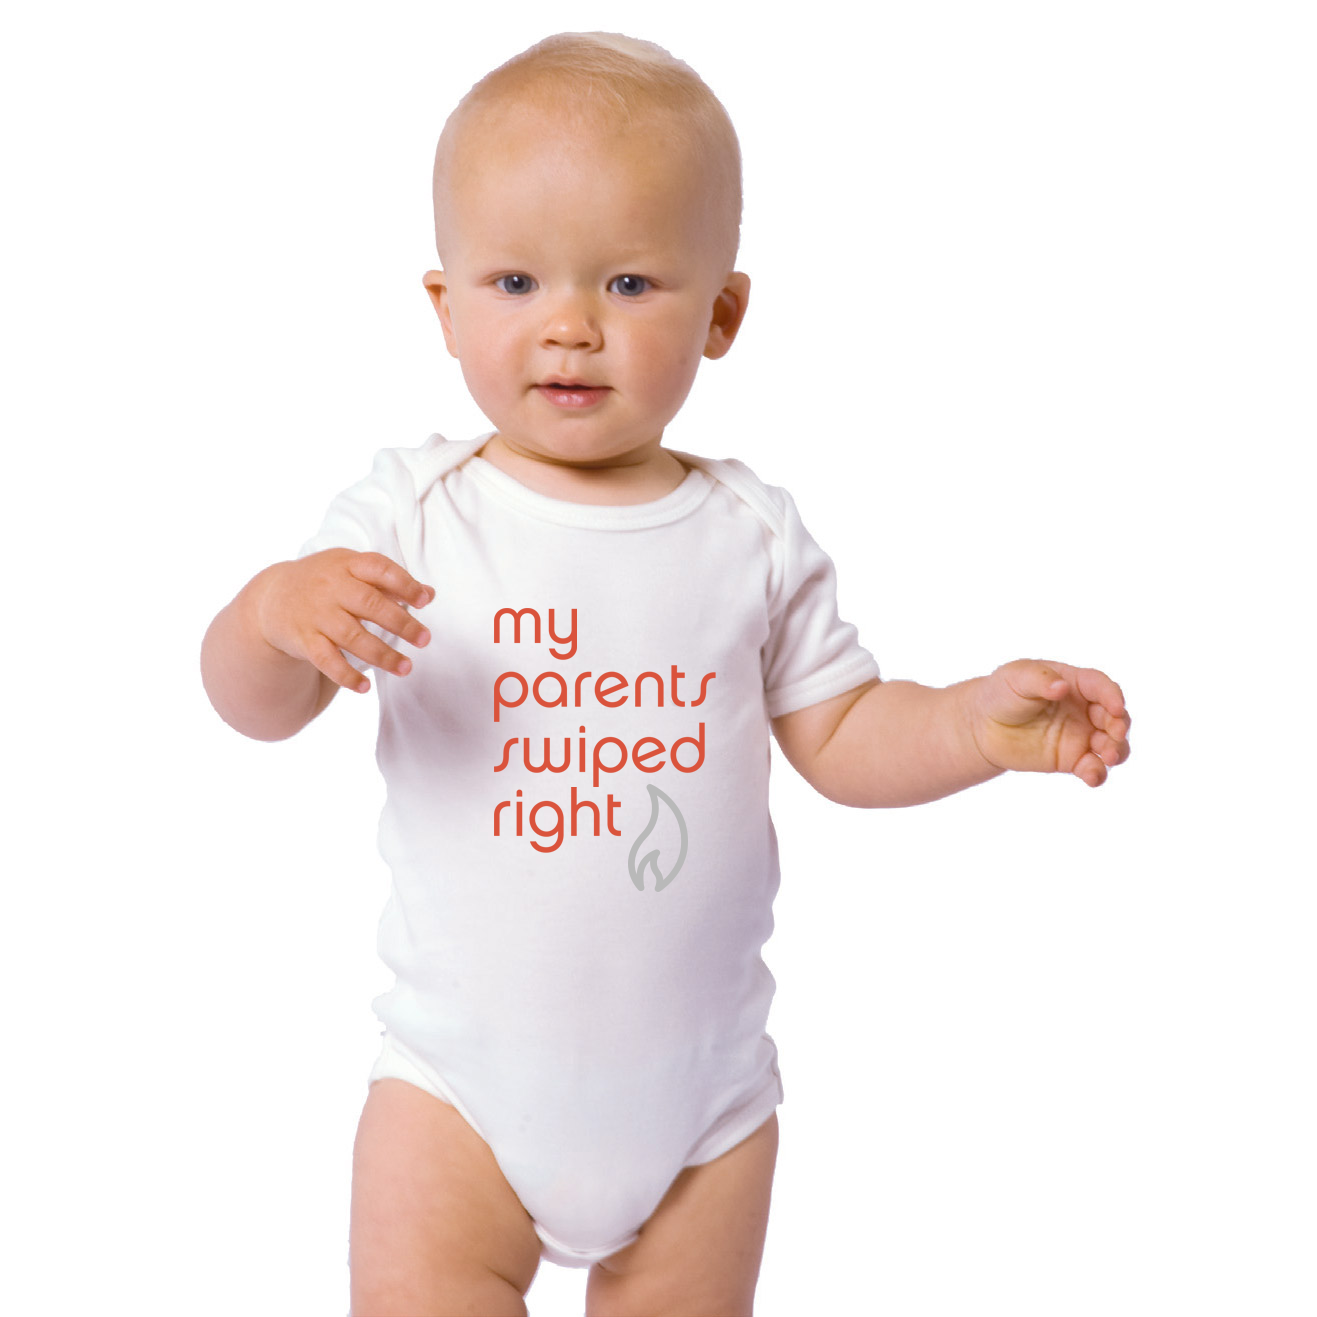 This Baby Onesie Is Literally The Best Thing Ever tinder baby